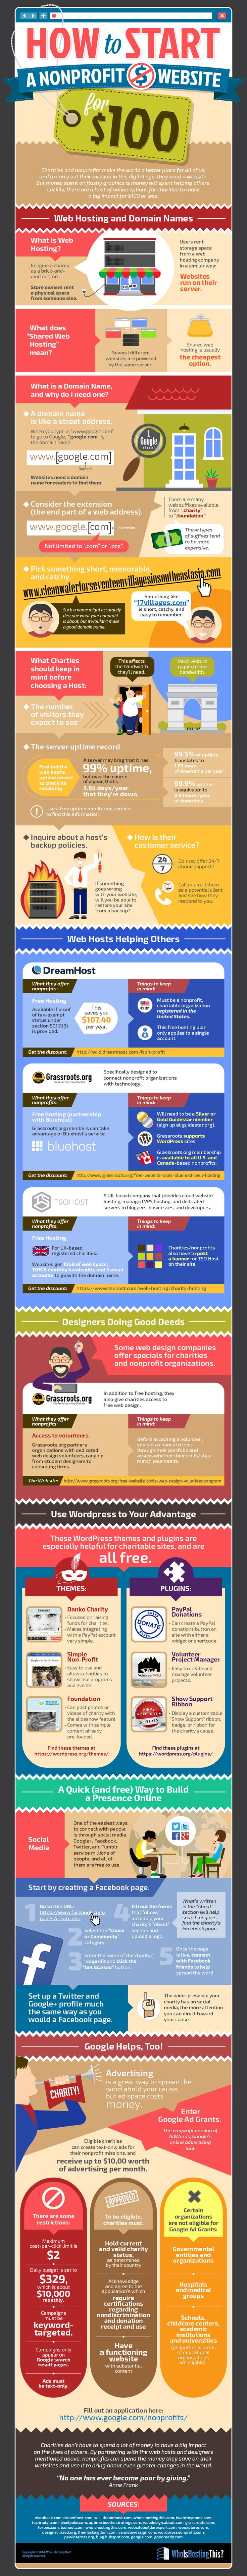 How to Create a Nonprofit Website for just 100 Dollar Infographic. Topic: chairty, charitable, humanitarian relief, web development, wordpress, webhosting.